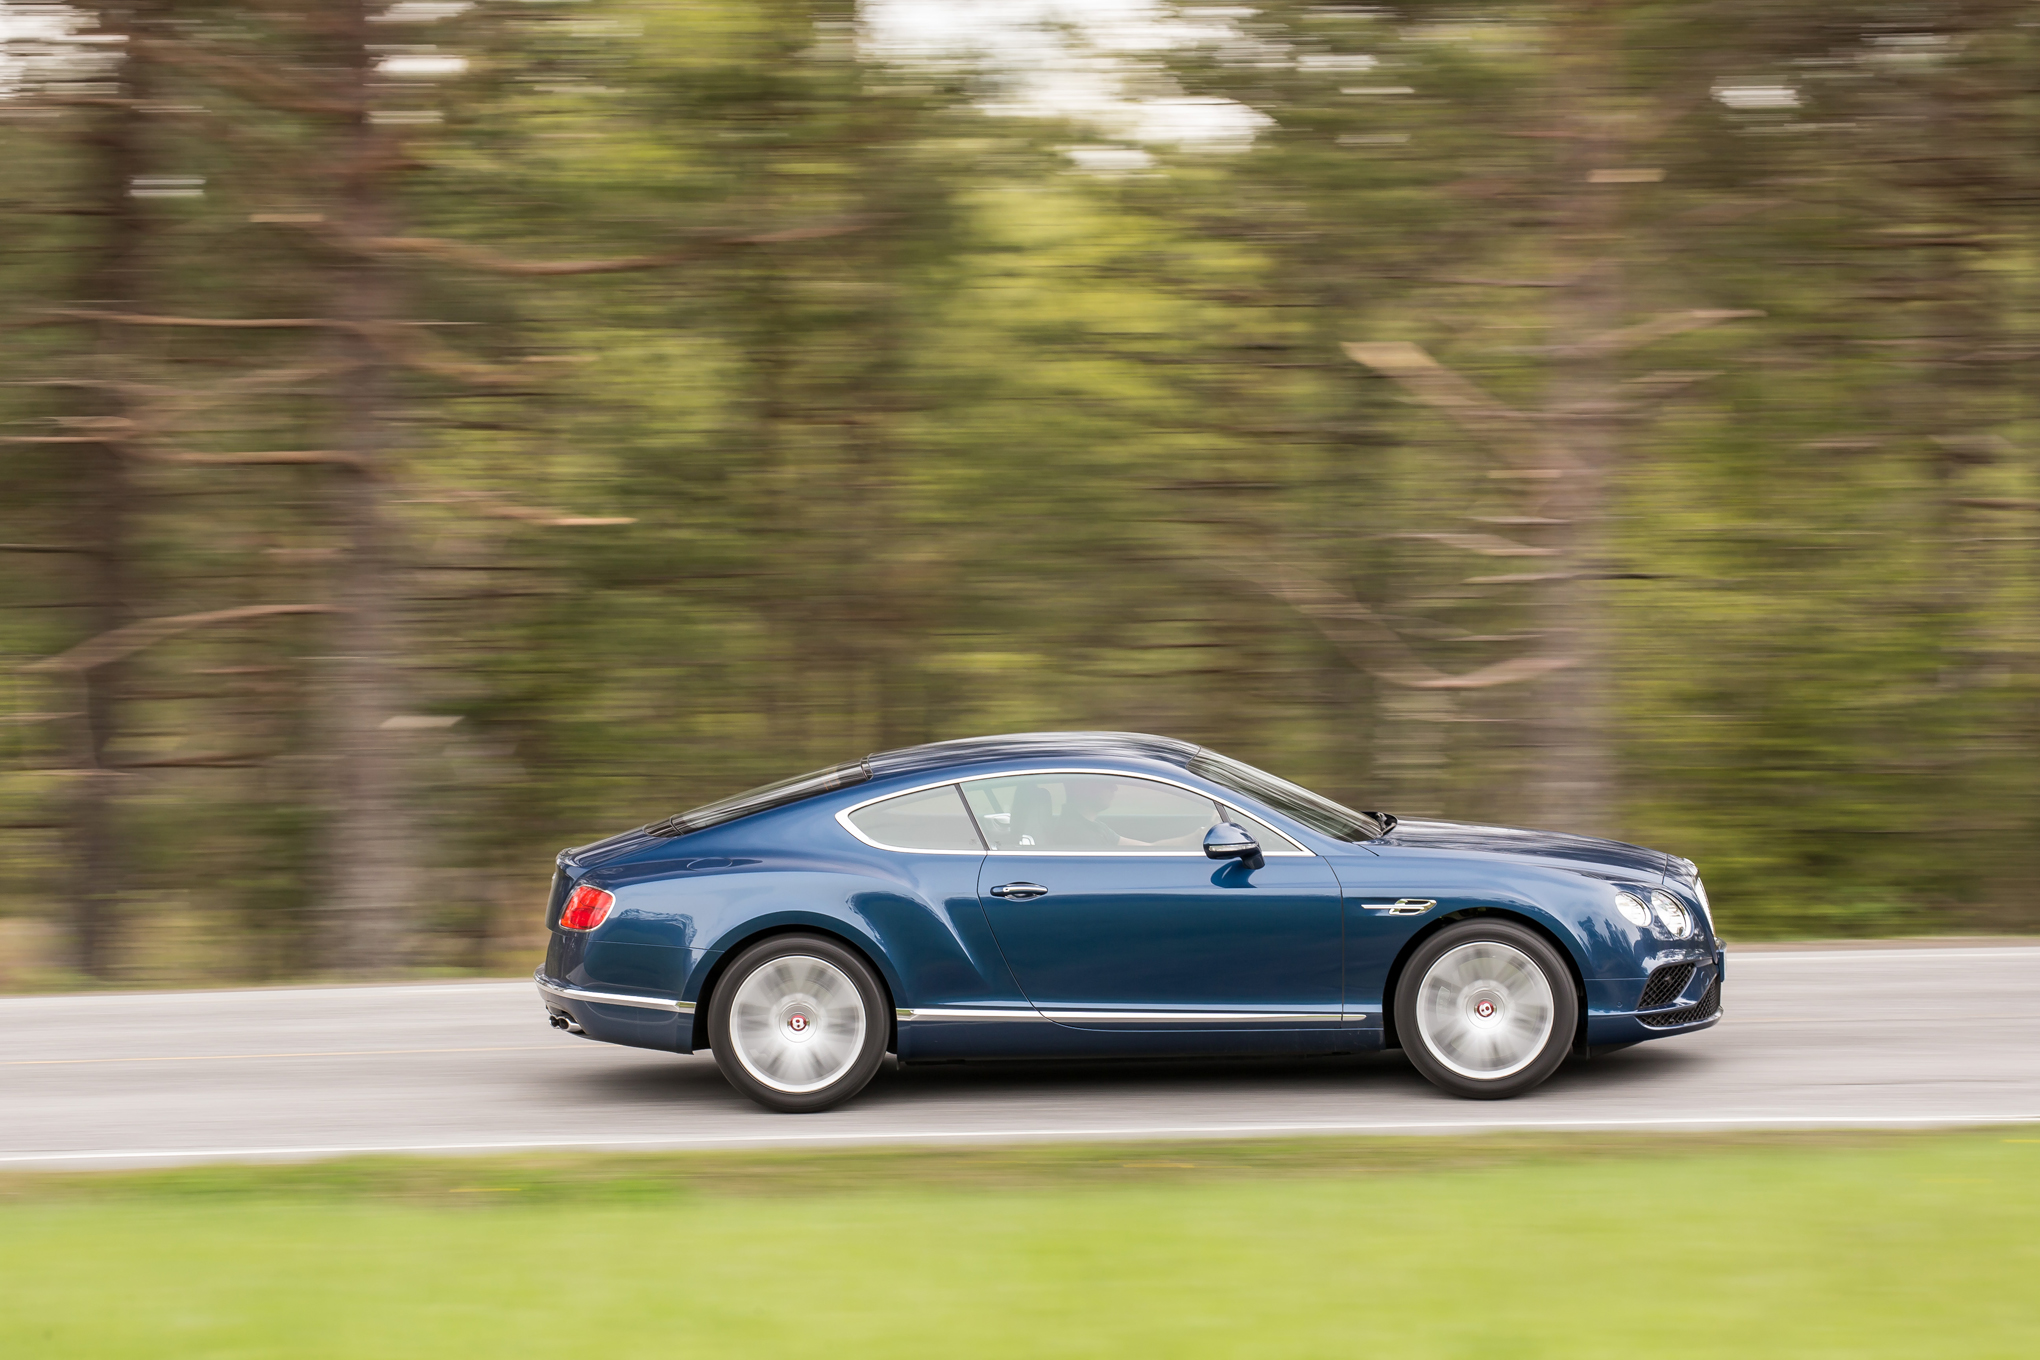 2019 Bentley Mulsanne photo - 4